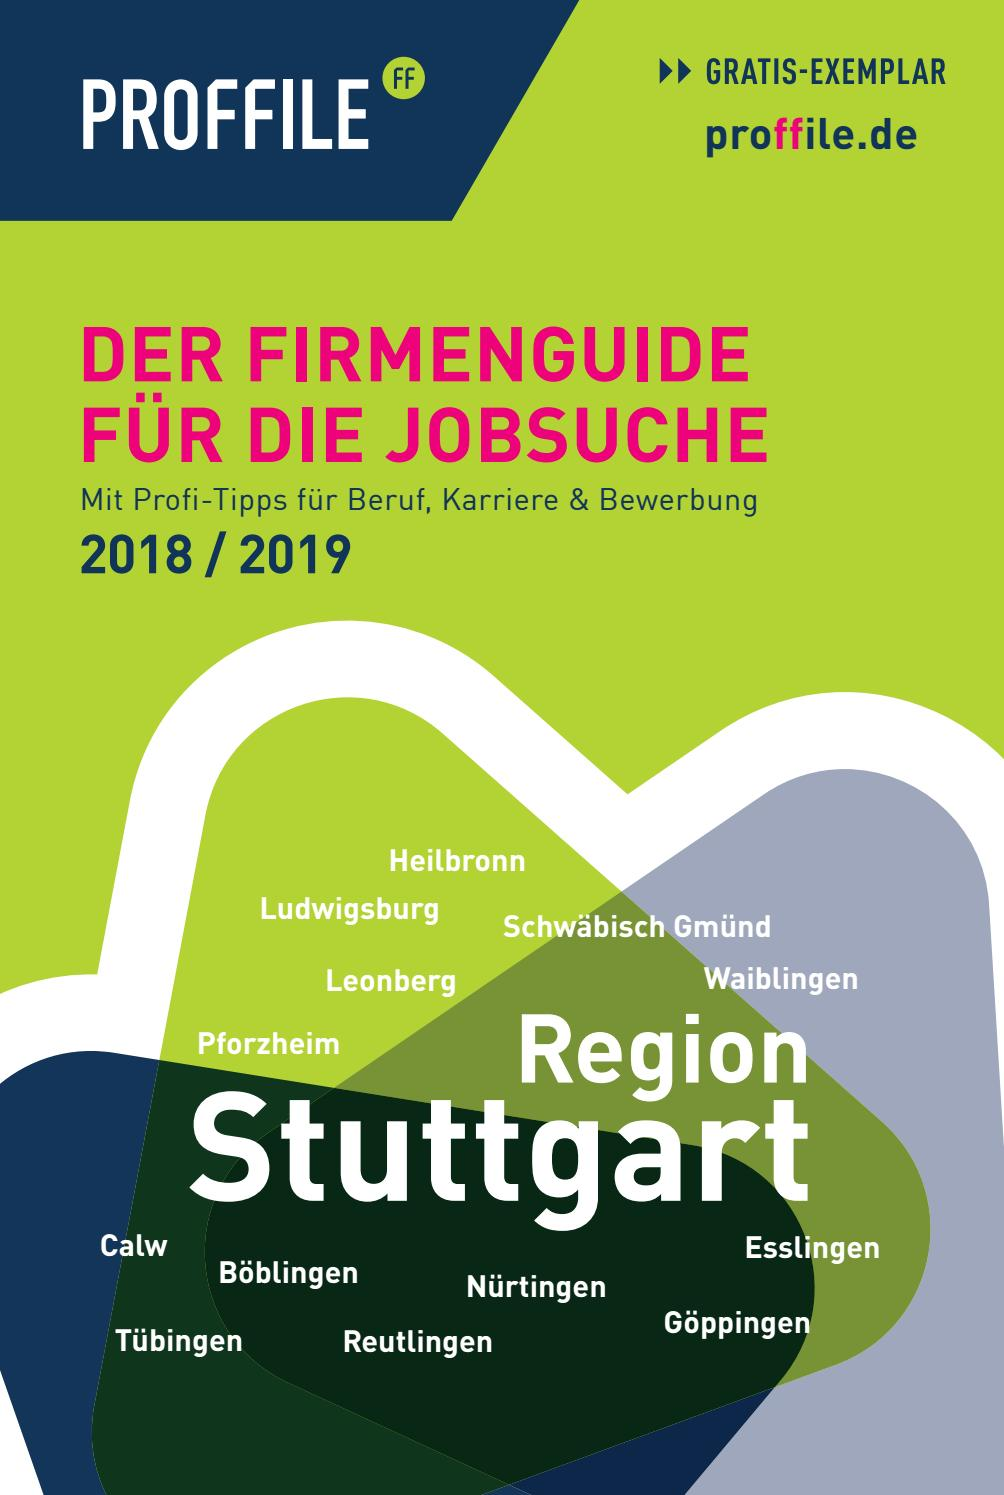 Proffile Stuttgart 2018 - Buch by SMK Medien GmbH & Co. KG | PROFFILE -  issuu